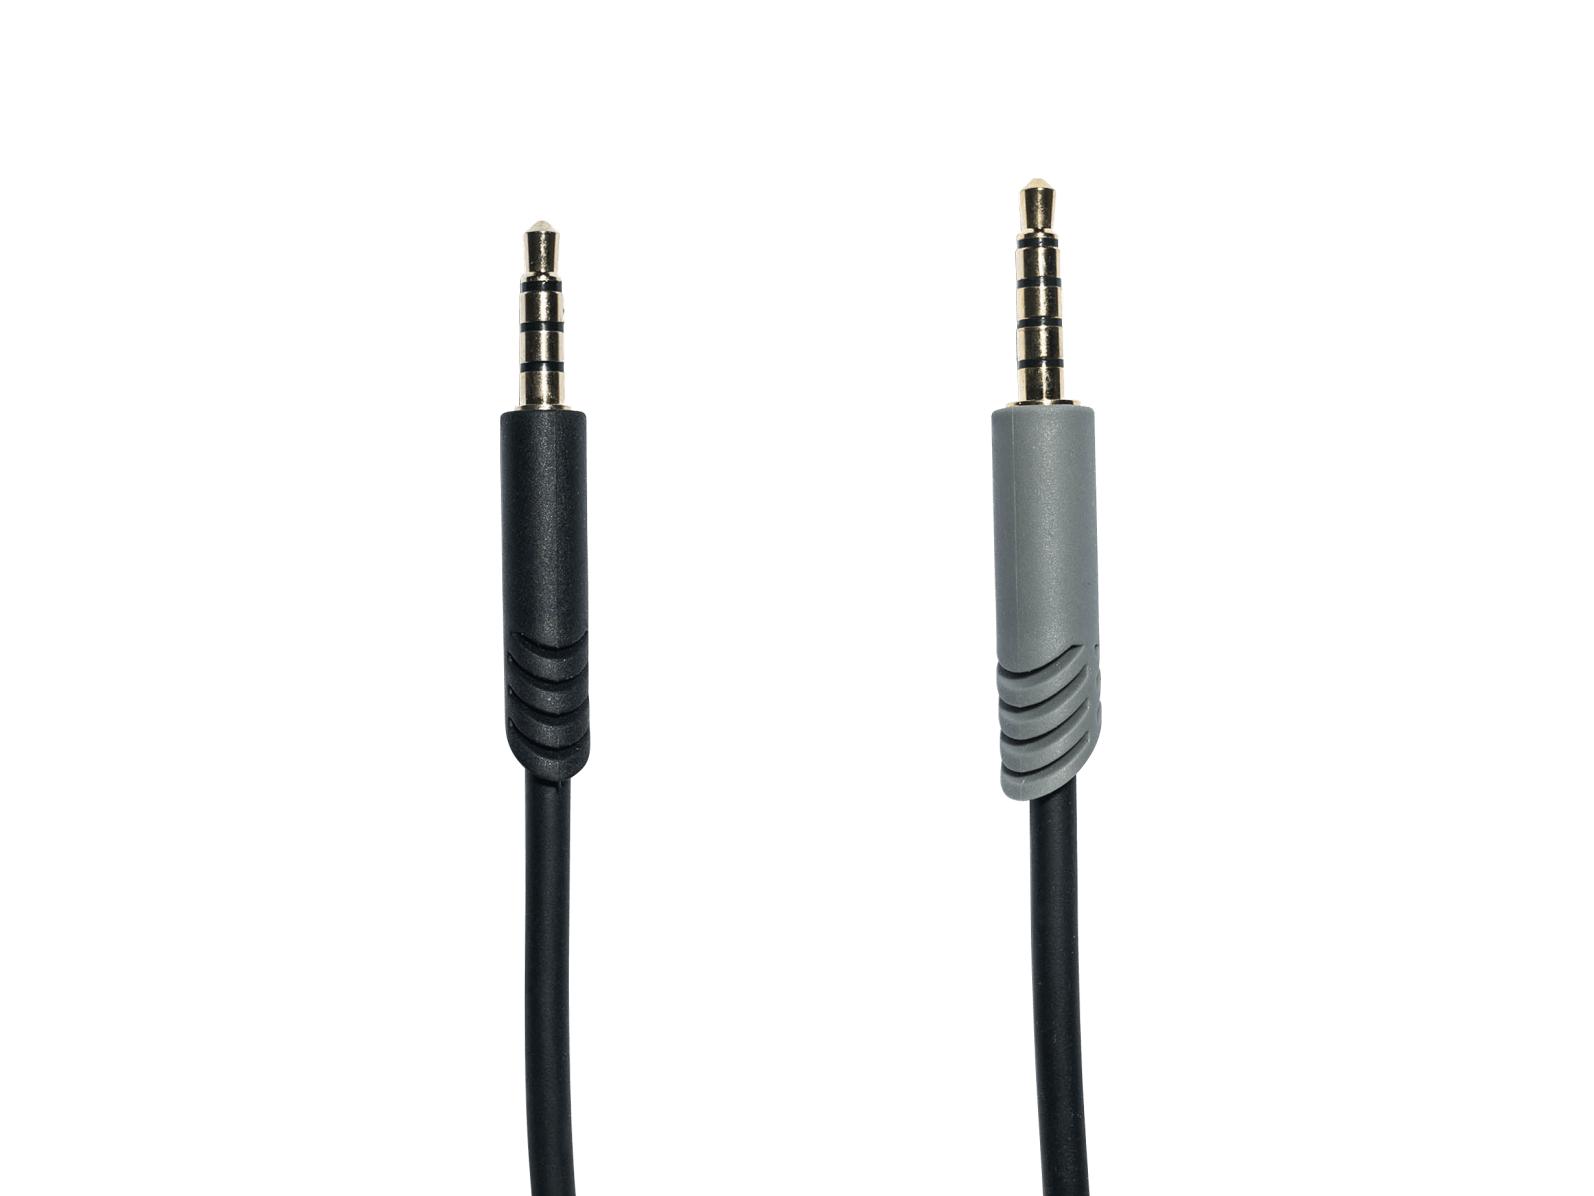 0-5m-vr-cable-gallery-01